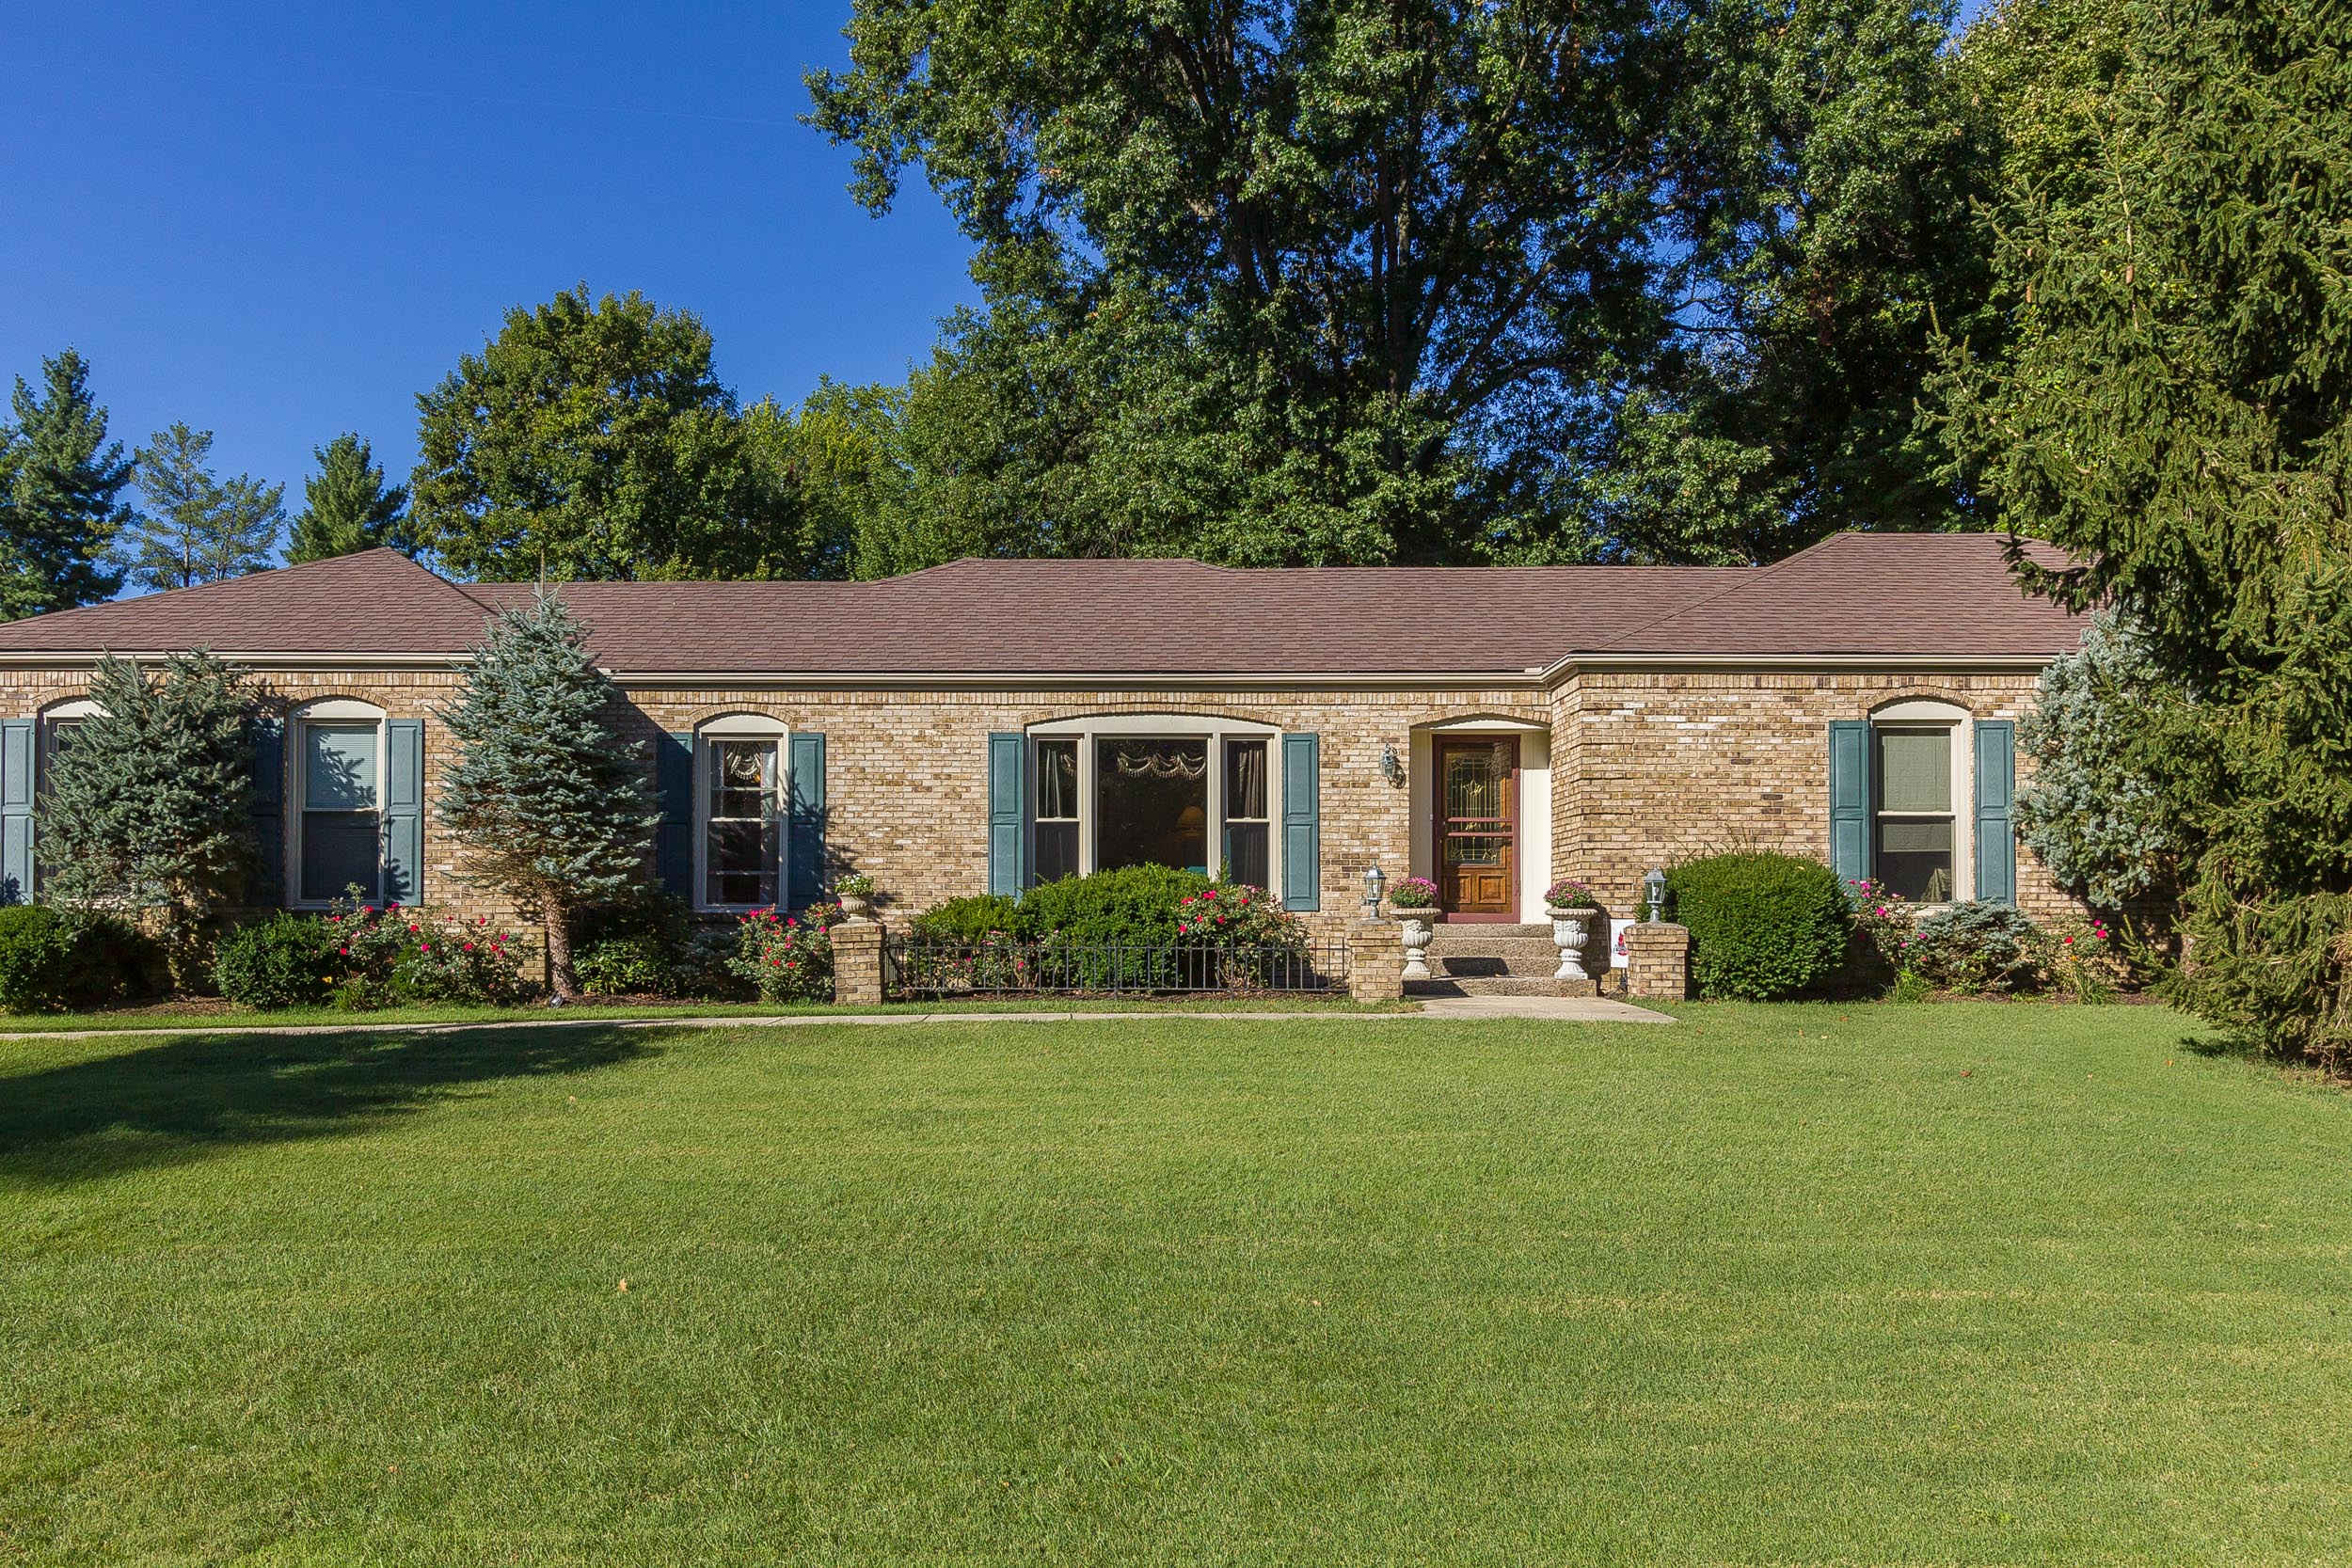 3406 River Bluff, Prospect, Kentucky 40059